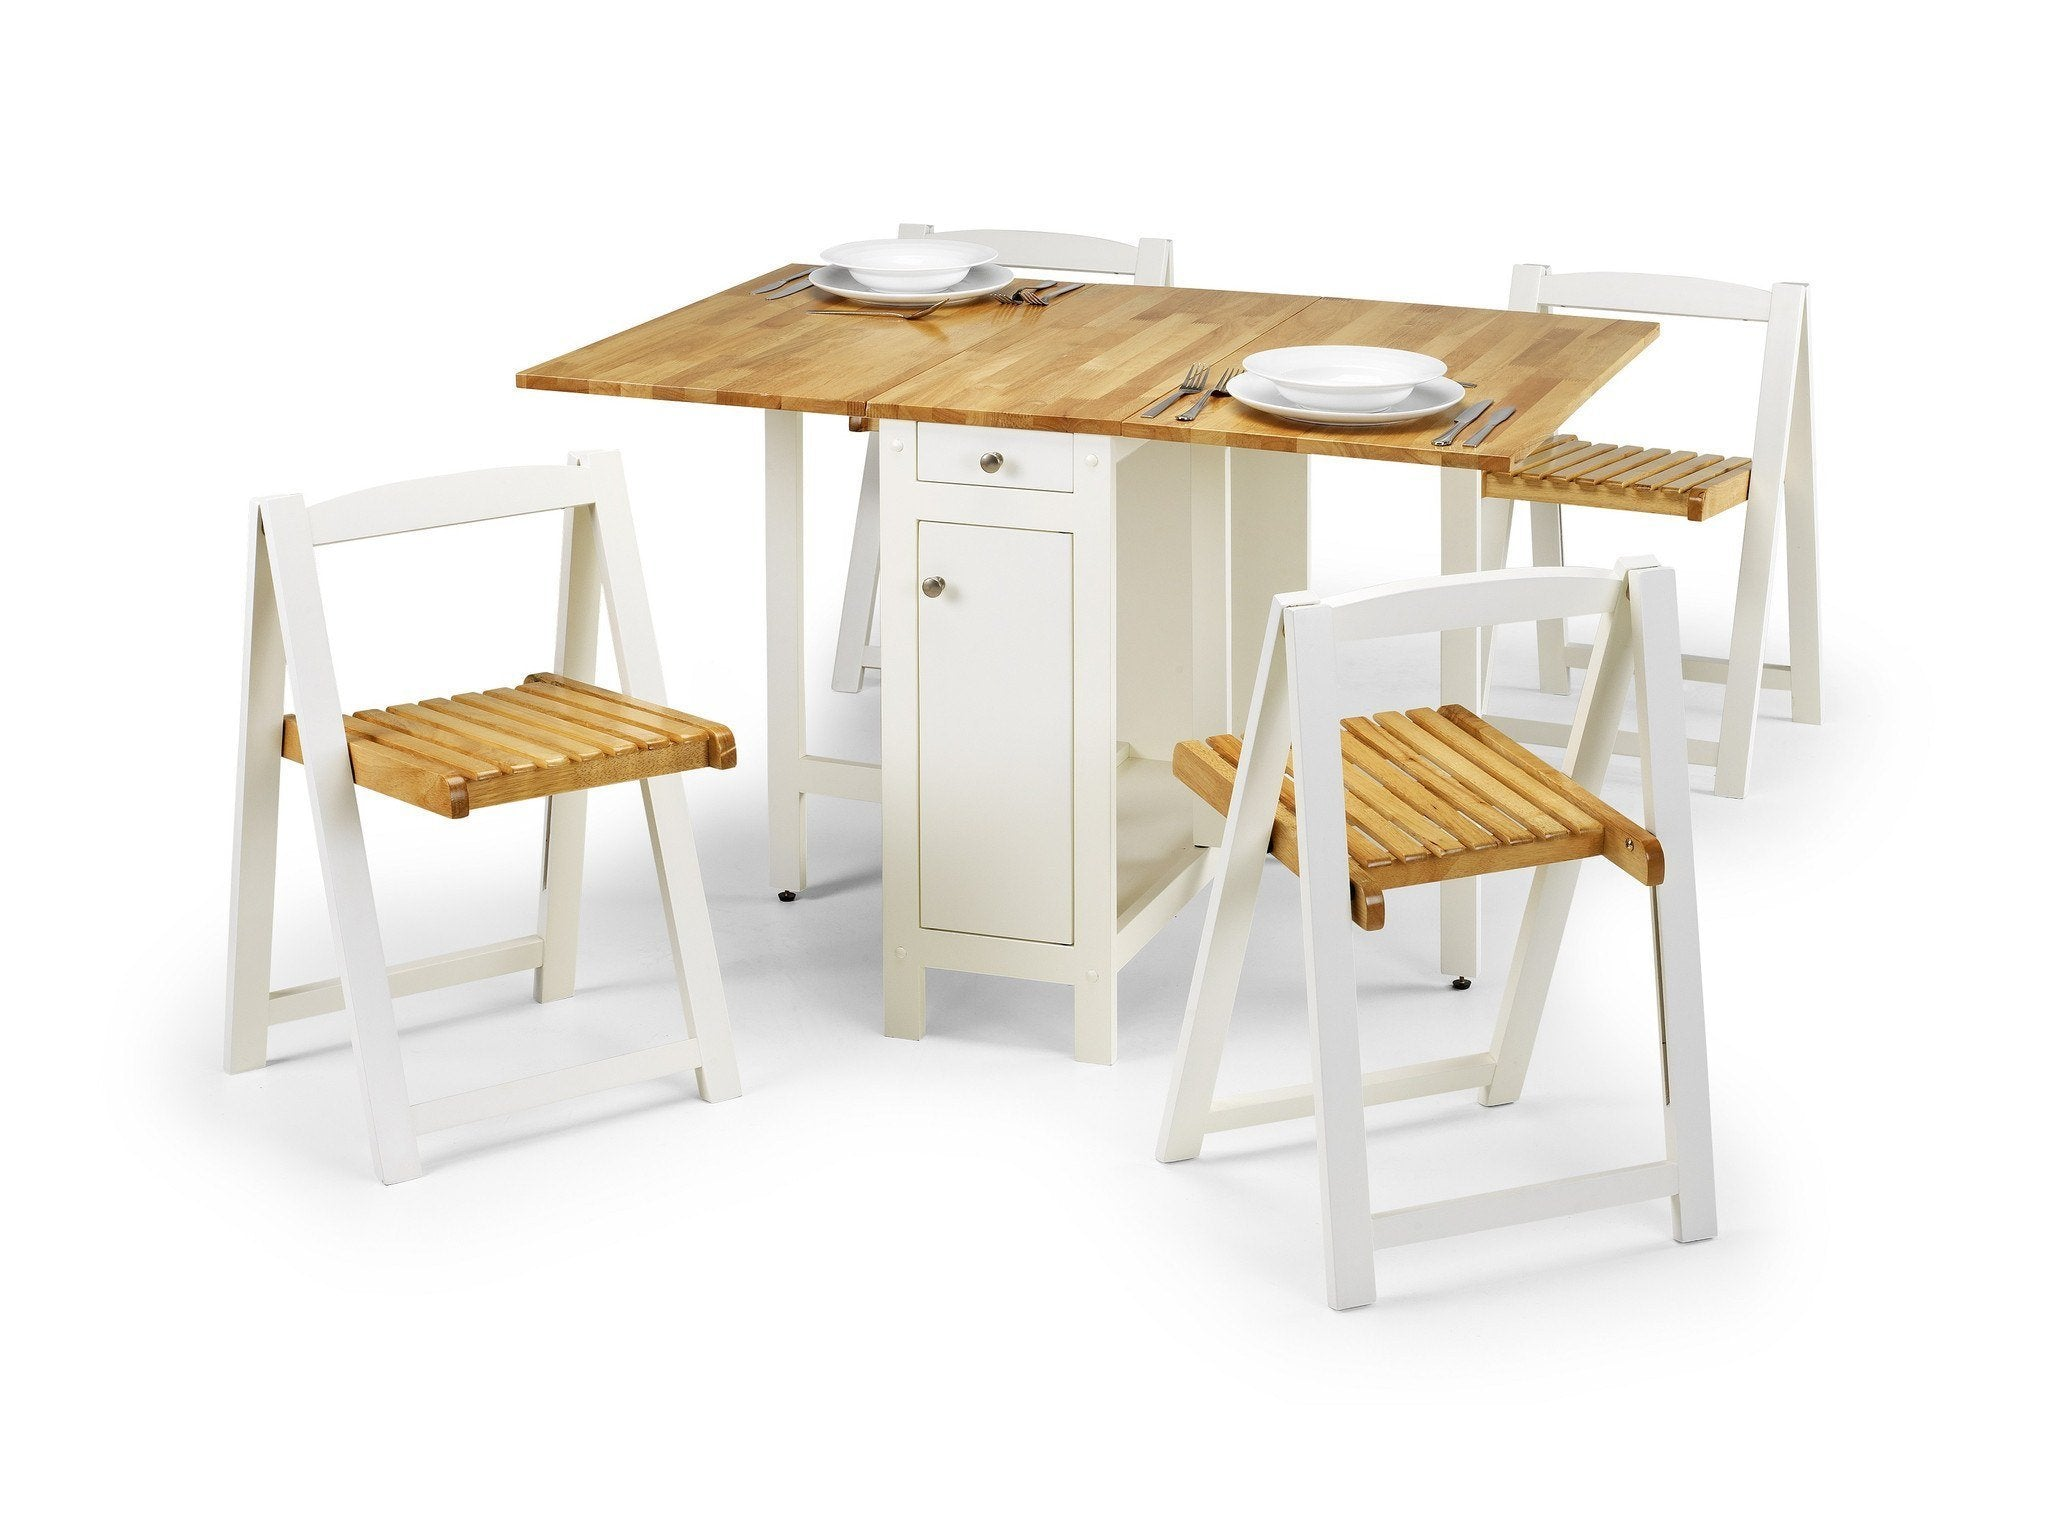 Savoy Dining Set White Natural Stowaway butterfly Set by Julian Bowen at GoFurn in Kent